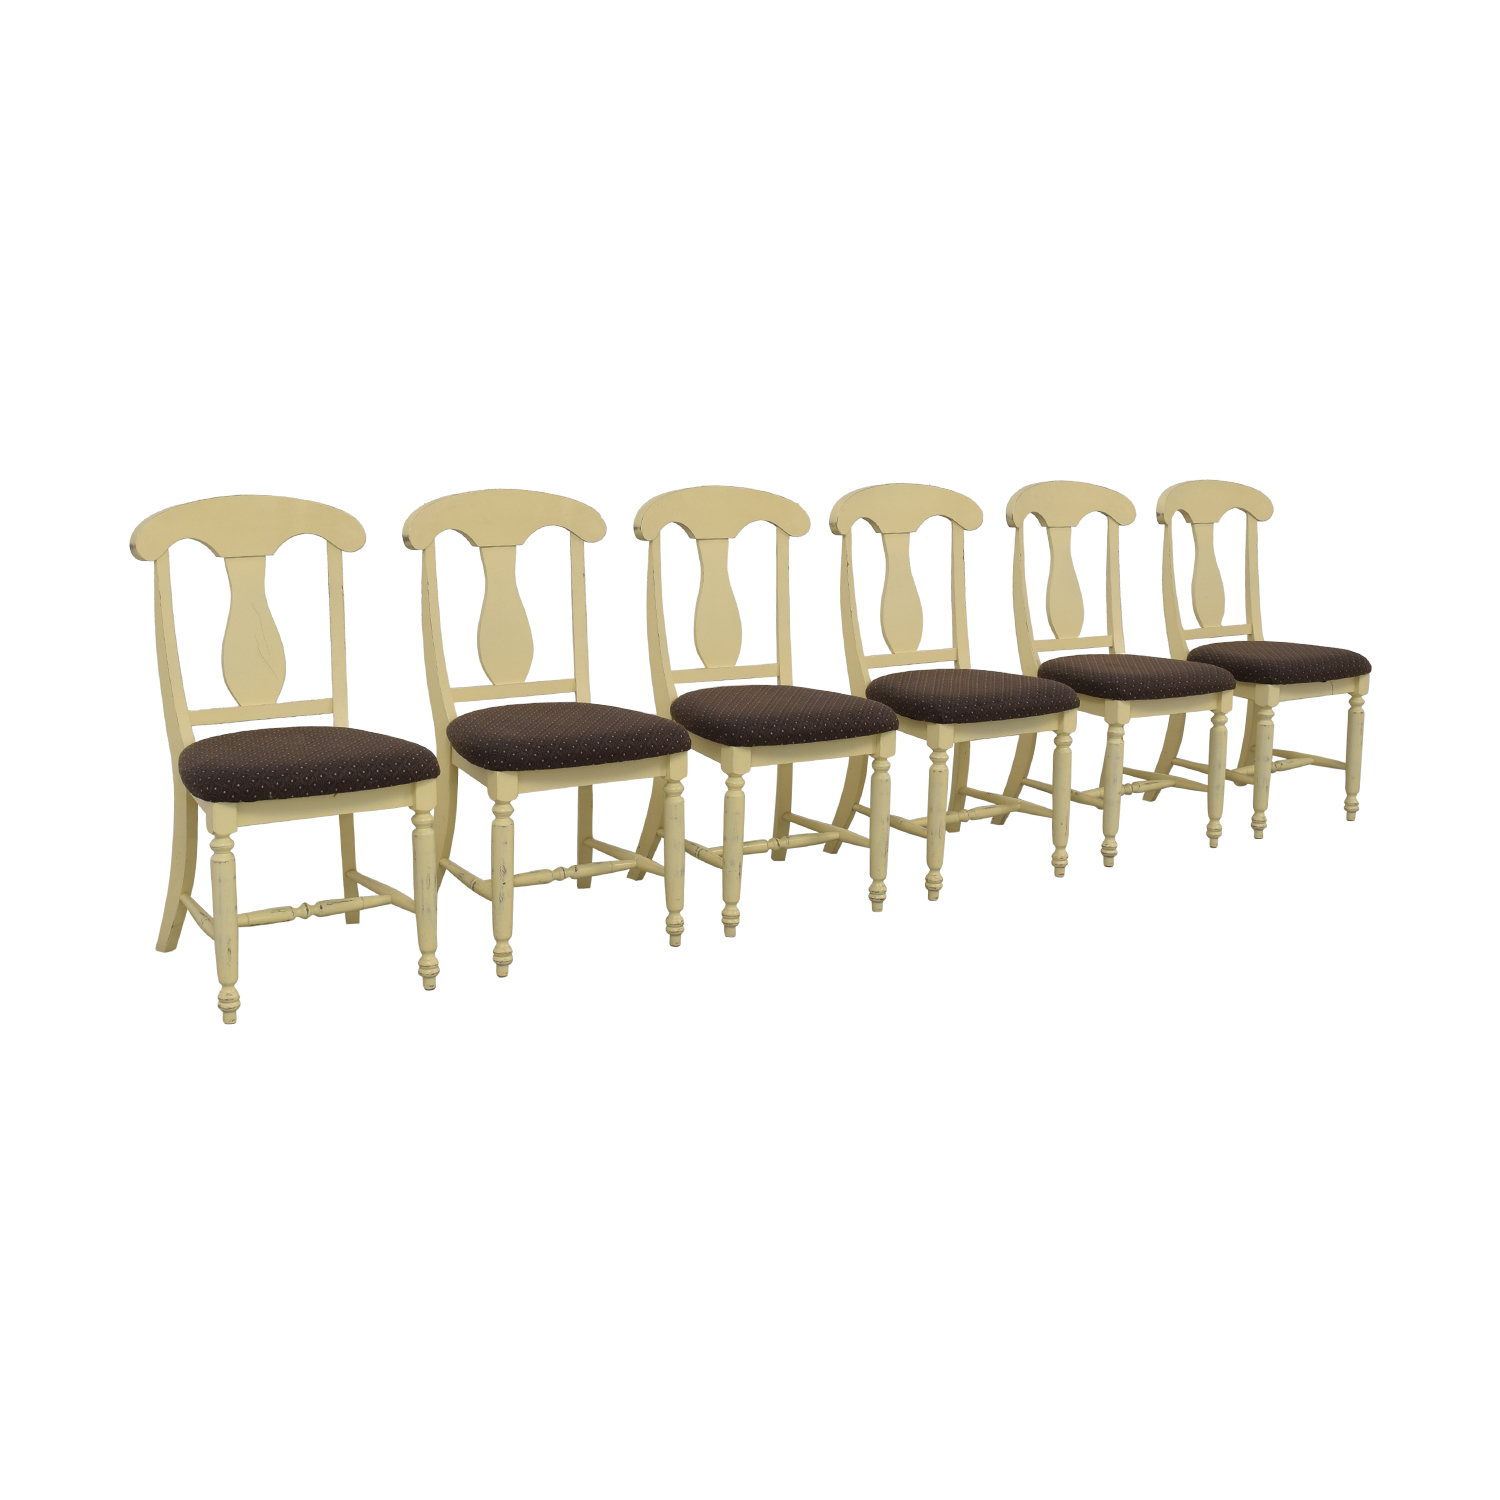 Canadel Furniture Upholstered Dining Chairs used